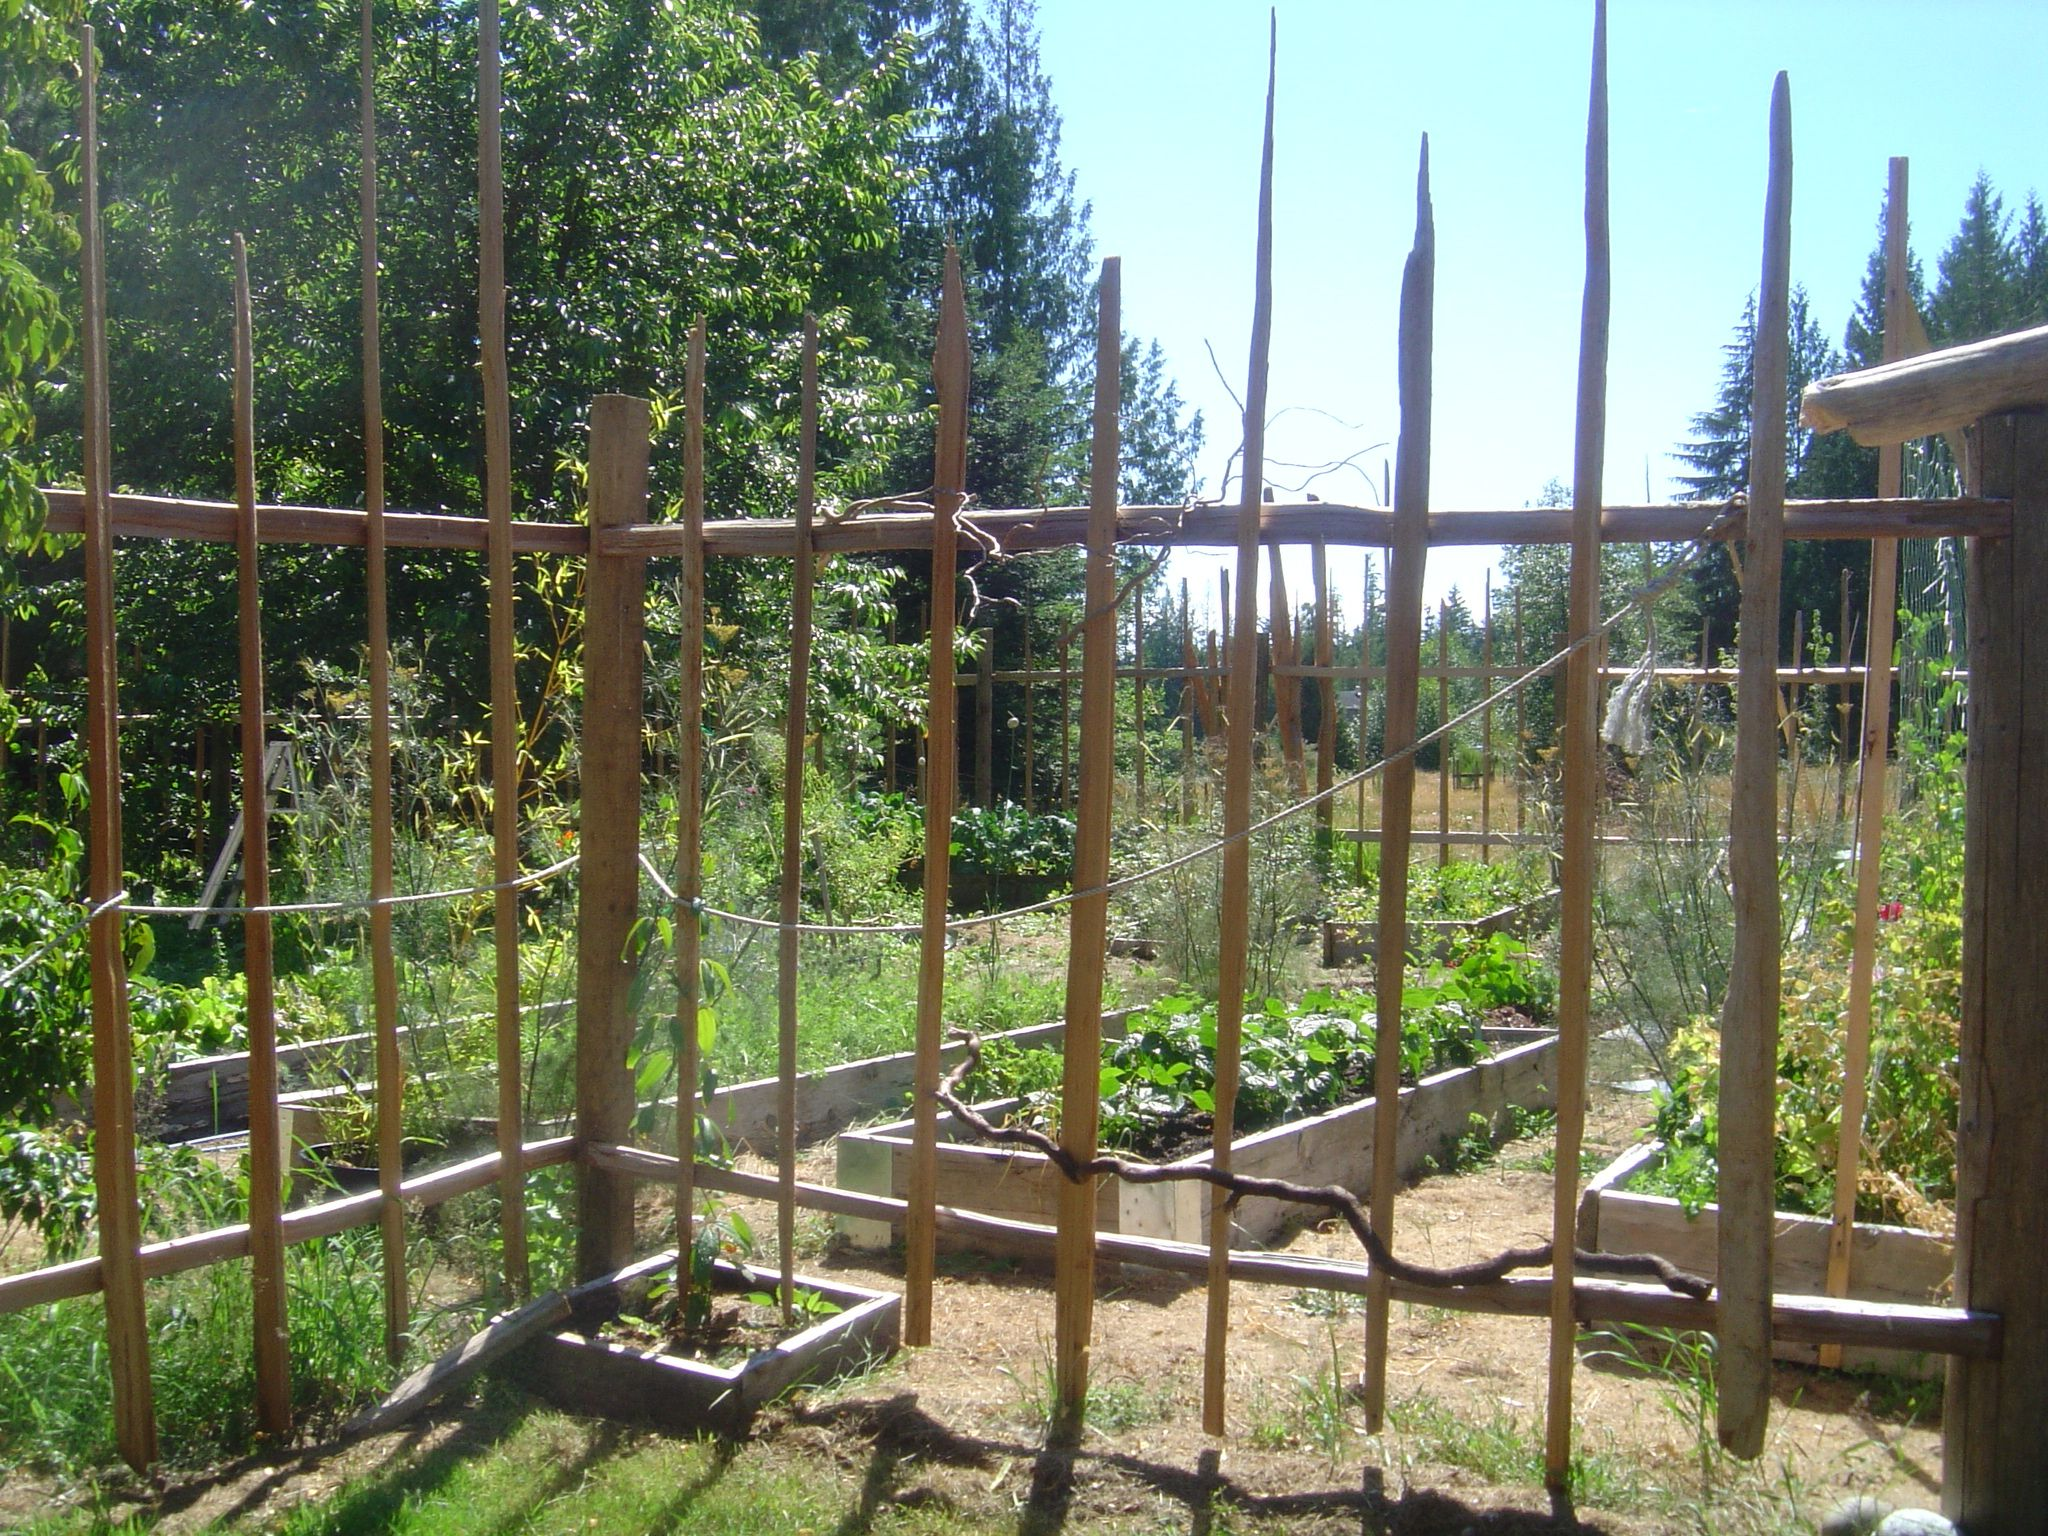 Vegetable garden deer fence ideas - Diy Garden Deer Fence And How To Build A Deer Proof Funky Garden Enclosure